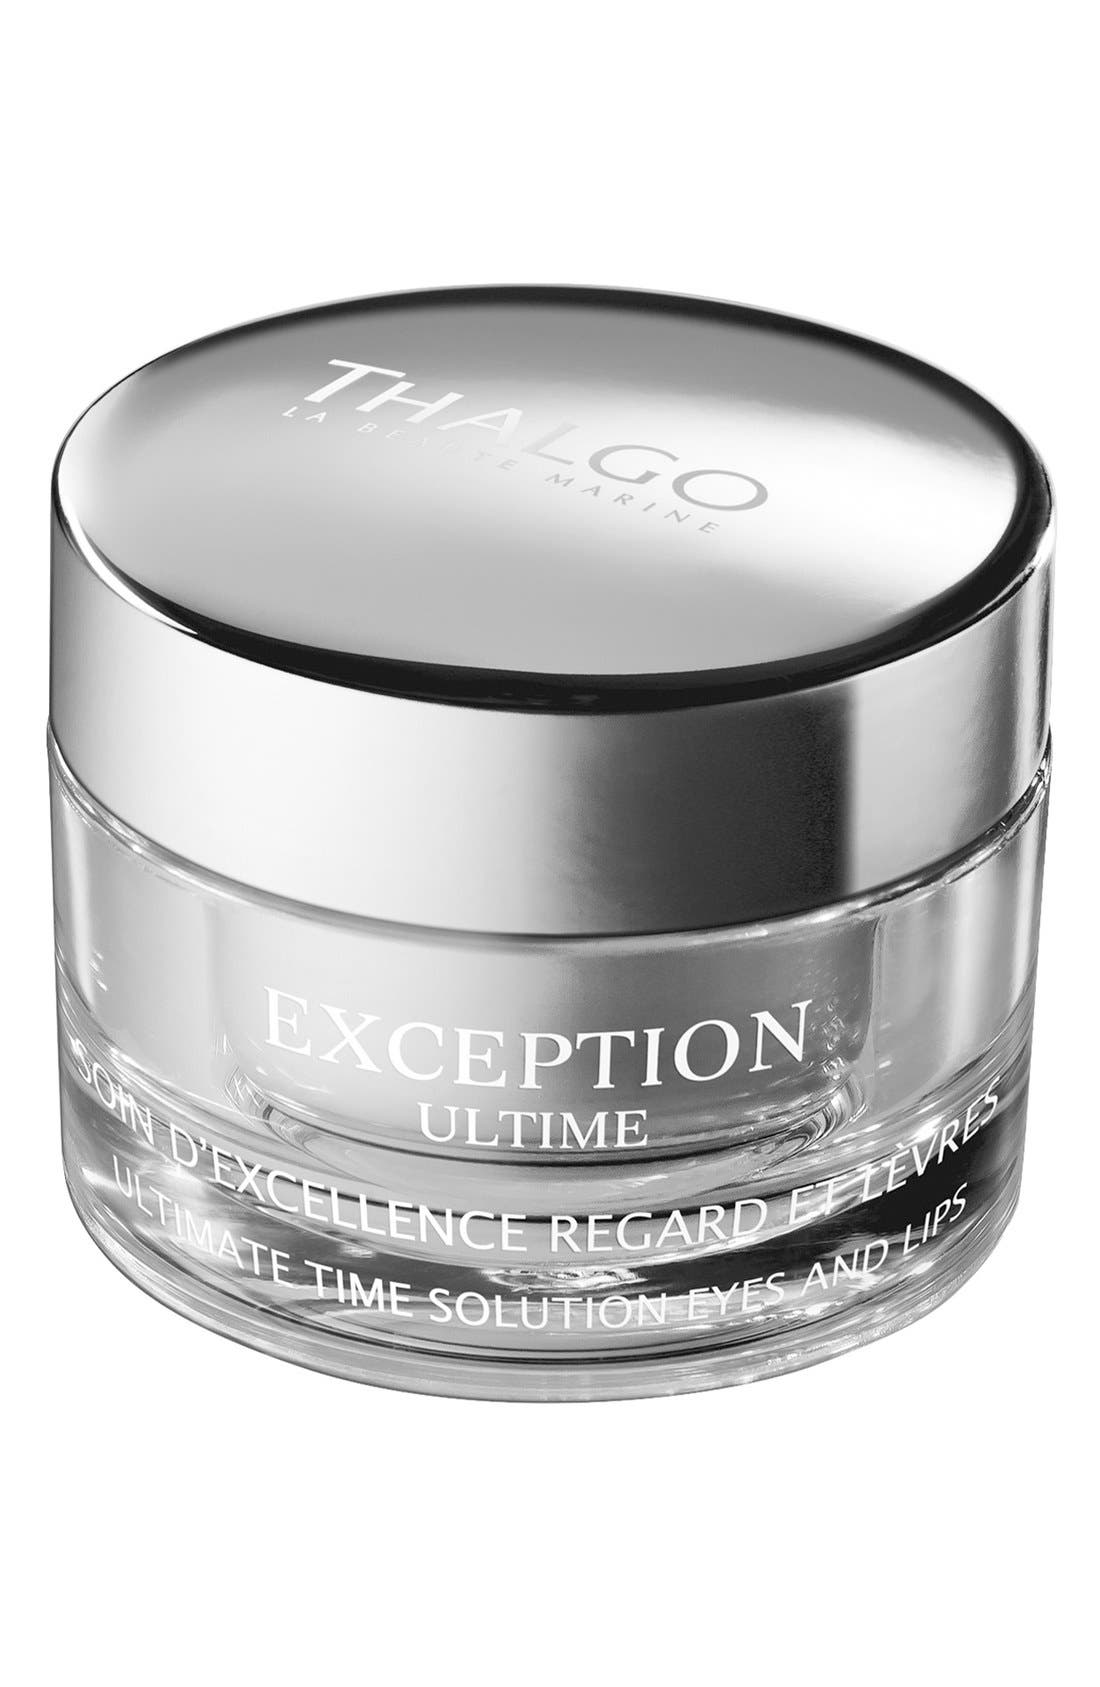 'Exception Ultime' Ultimate Time Solution Eyes & Lips,                         Main,                         color, NO COLOR